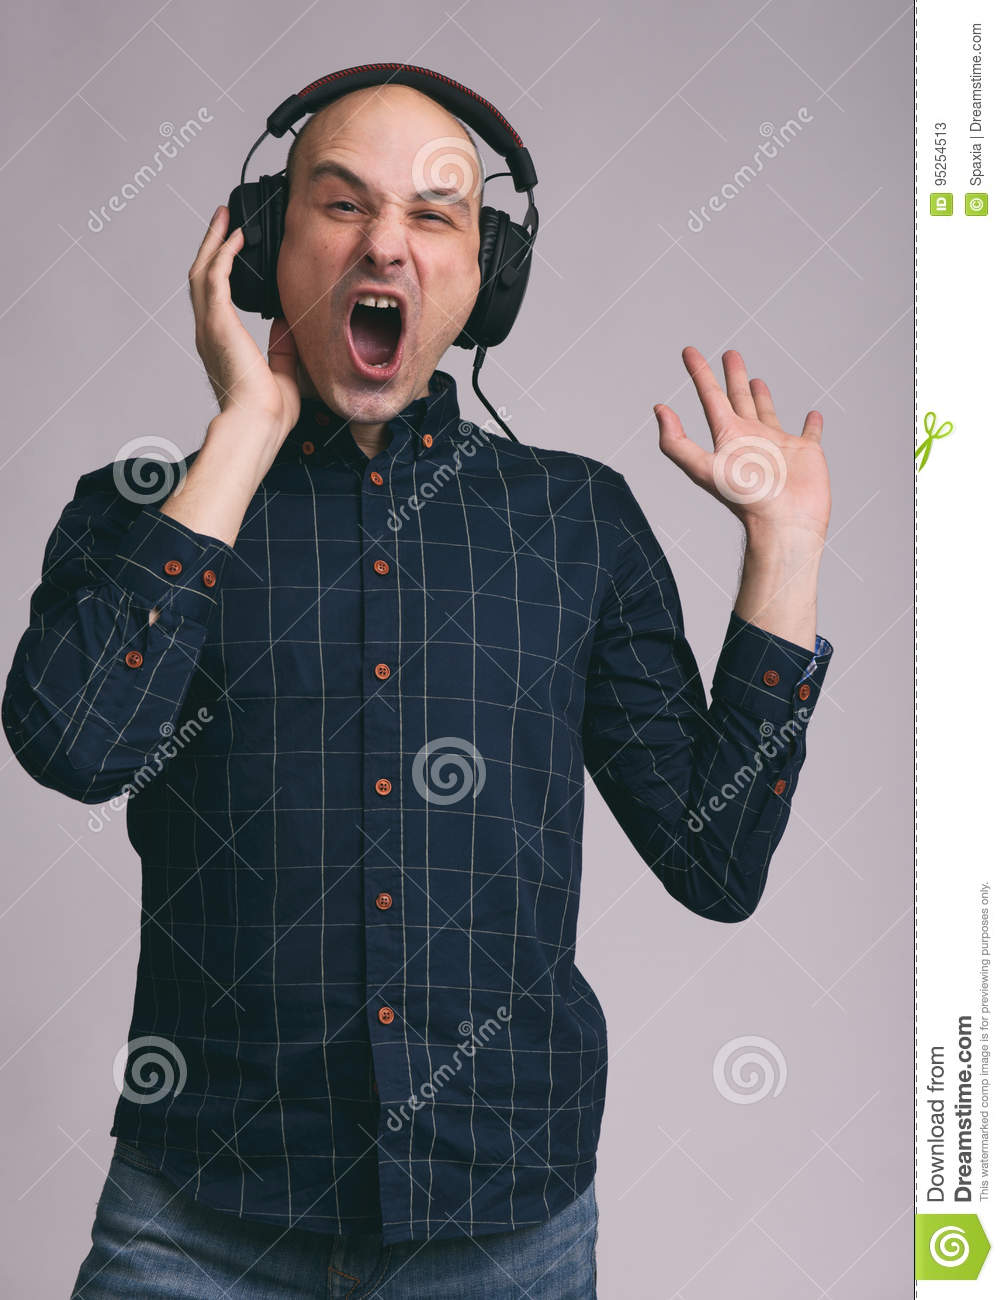 Funny man in headphones singing song. Isolated on gray